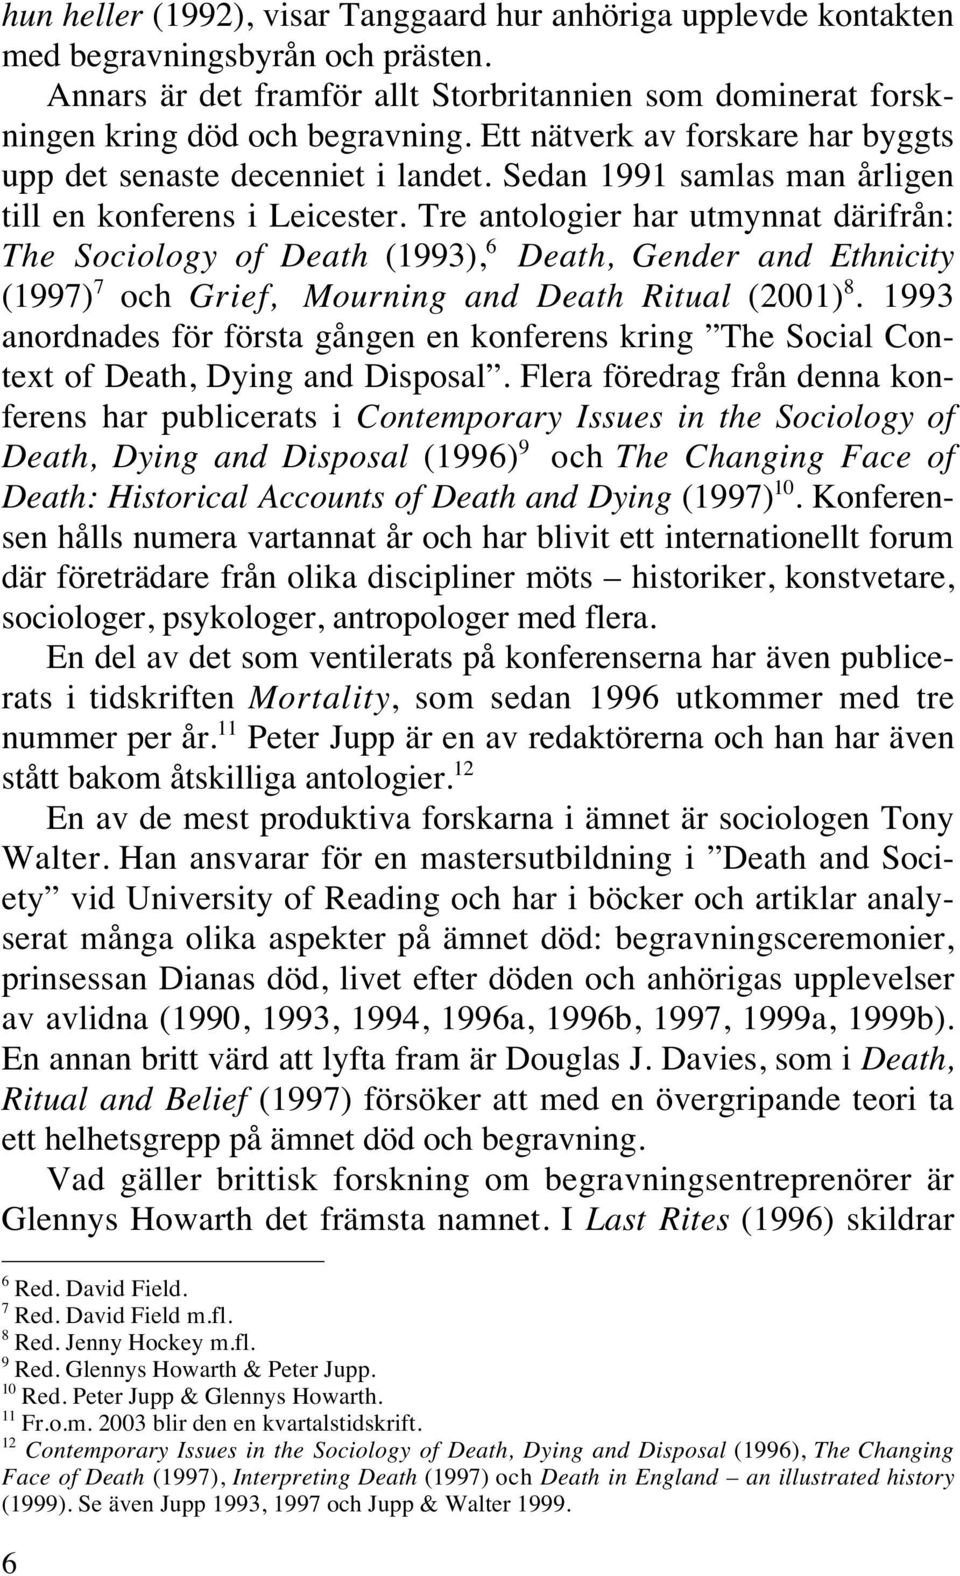 Tre antologier har utmynnat därifrån: The Sociology of Death (1993), 6 Death, Gender and Ethnicity (1997) 7 och Grief, Mourning and Death Ritual (2001) 8.